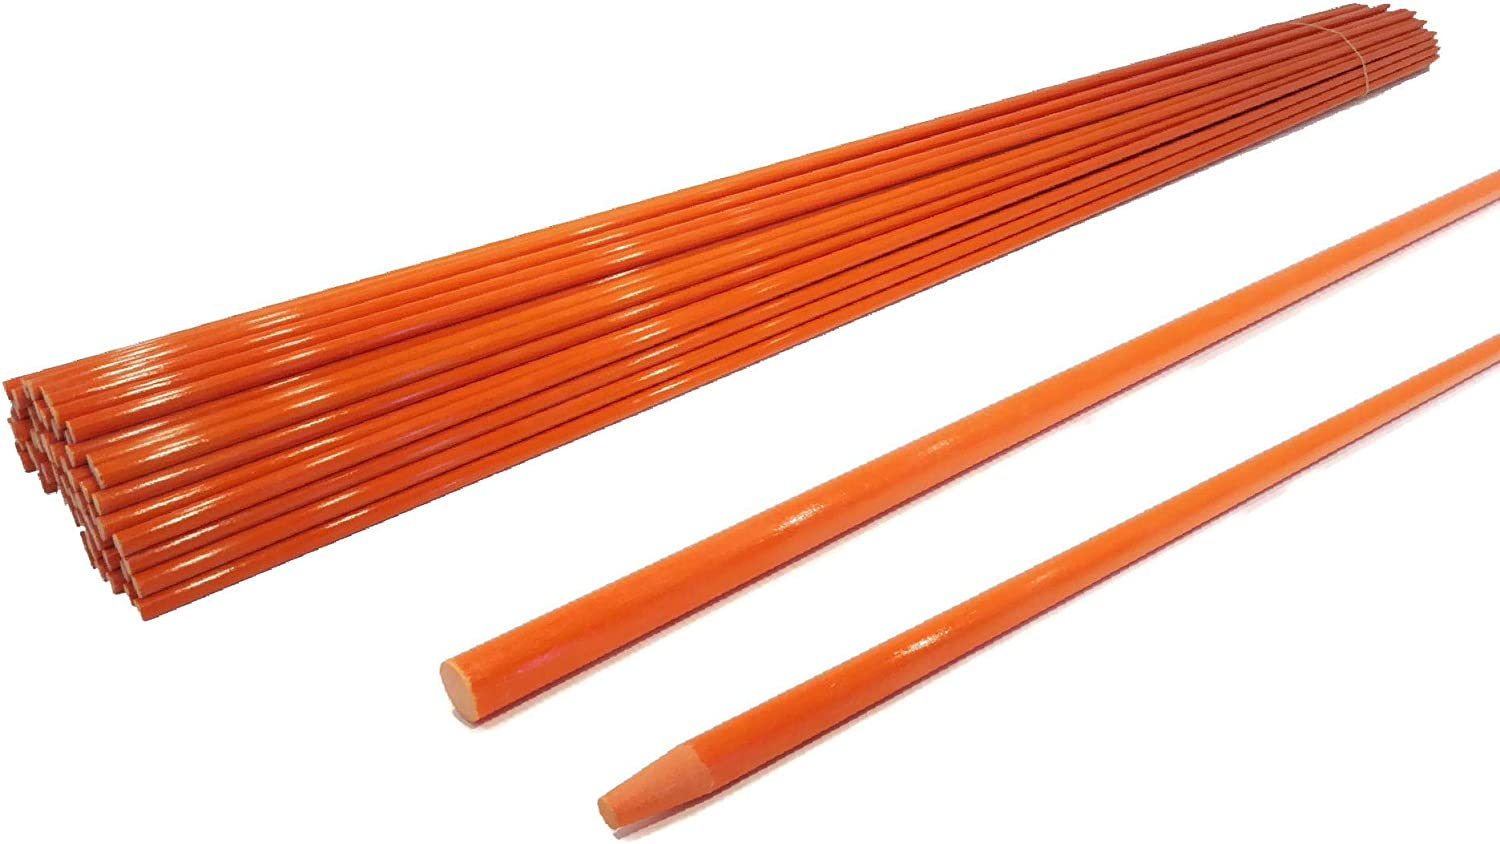 The ROP Shop | 1/4 Inch (Pack of 20) Orange 48 Inch Non-Reflective Driveway Markers, Snow Stakes Poles for Snow Plowing Driveways, Parking Lots, Walkways, Sidewalks